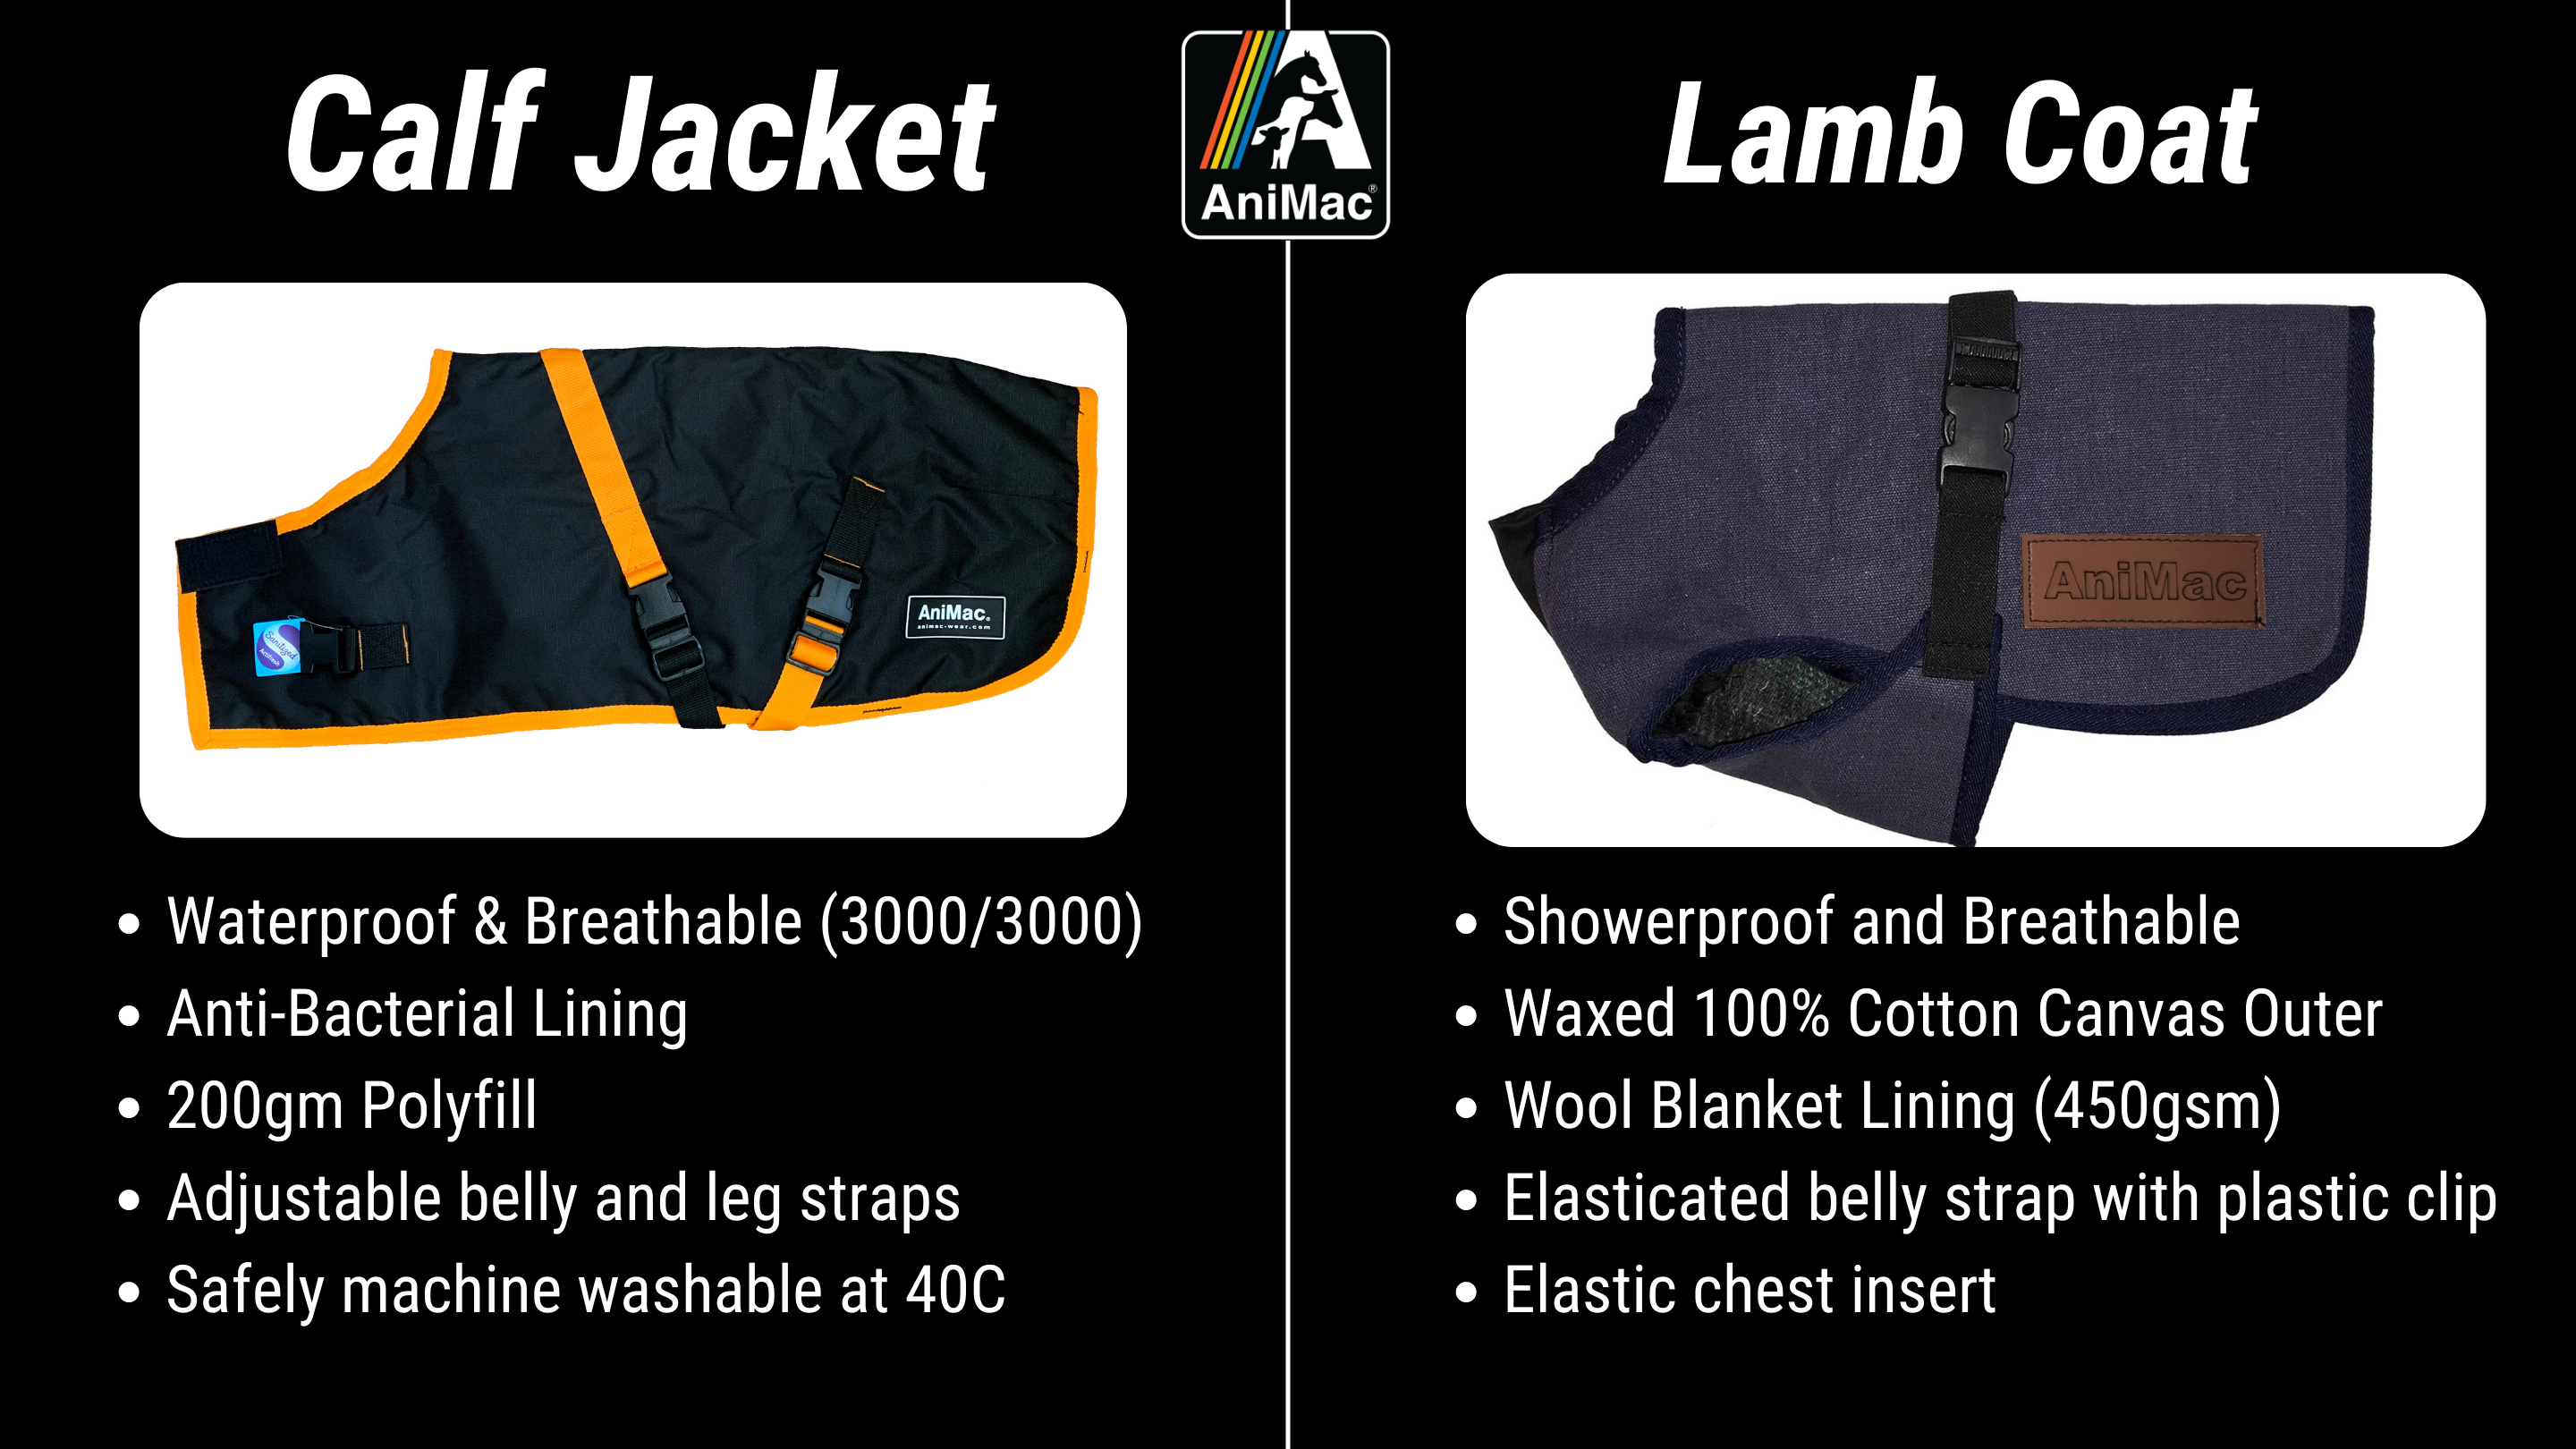 AniMac waterproof calf jacket for goat coat and lamb jacket for kids